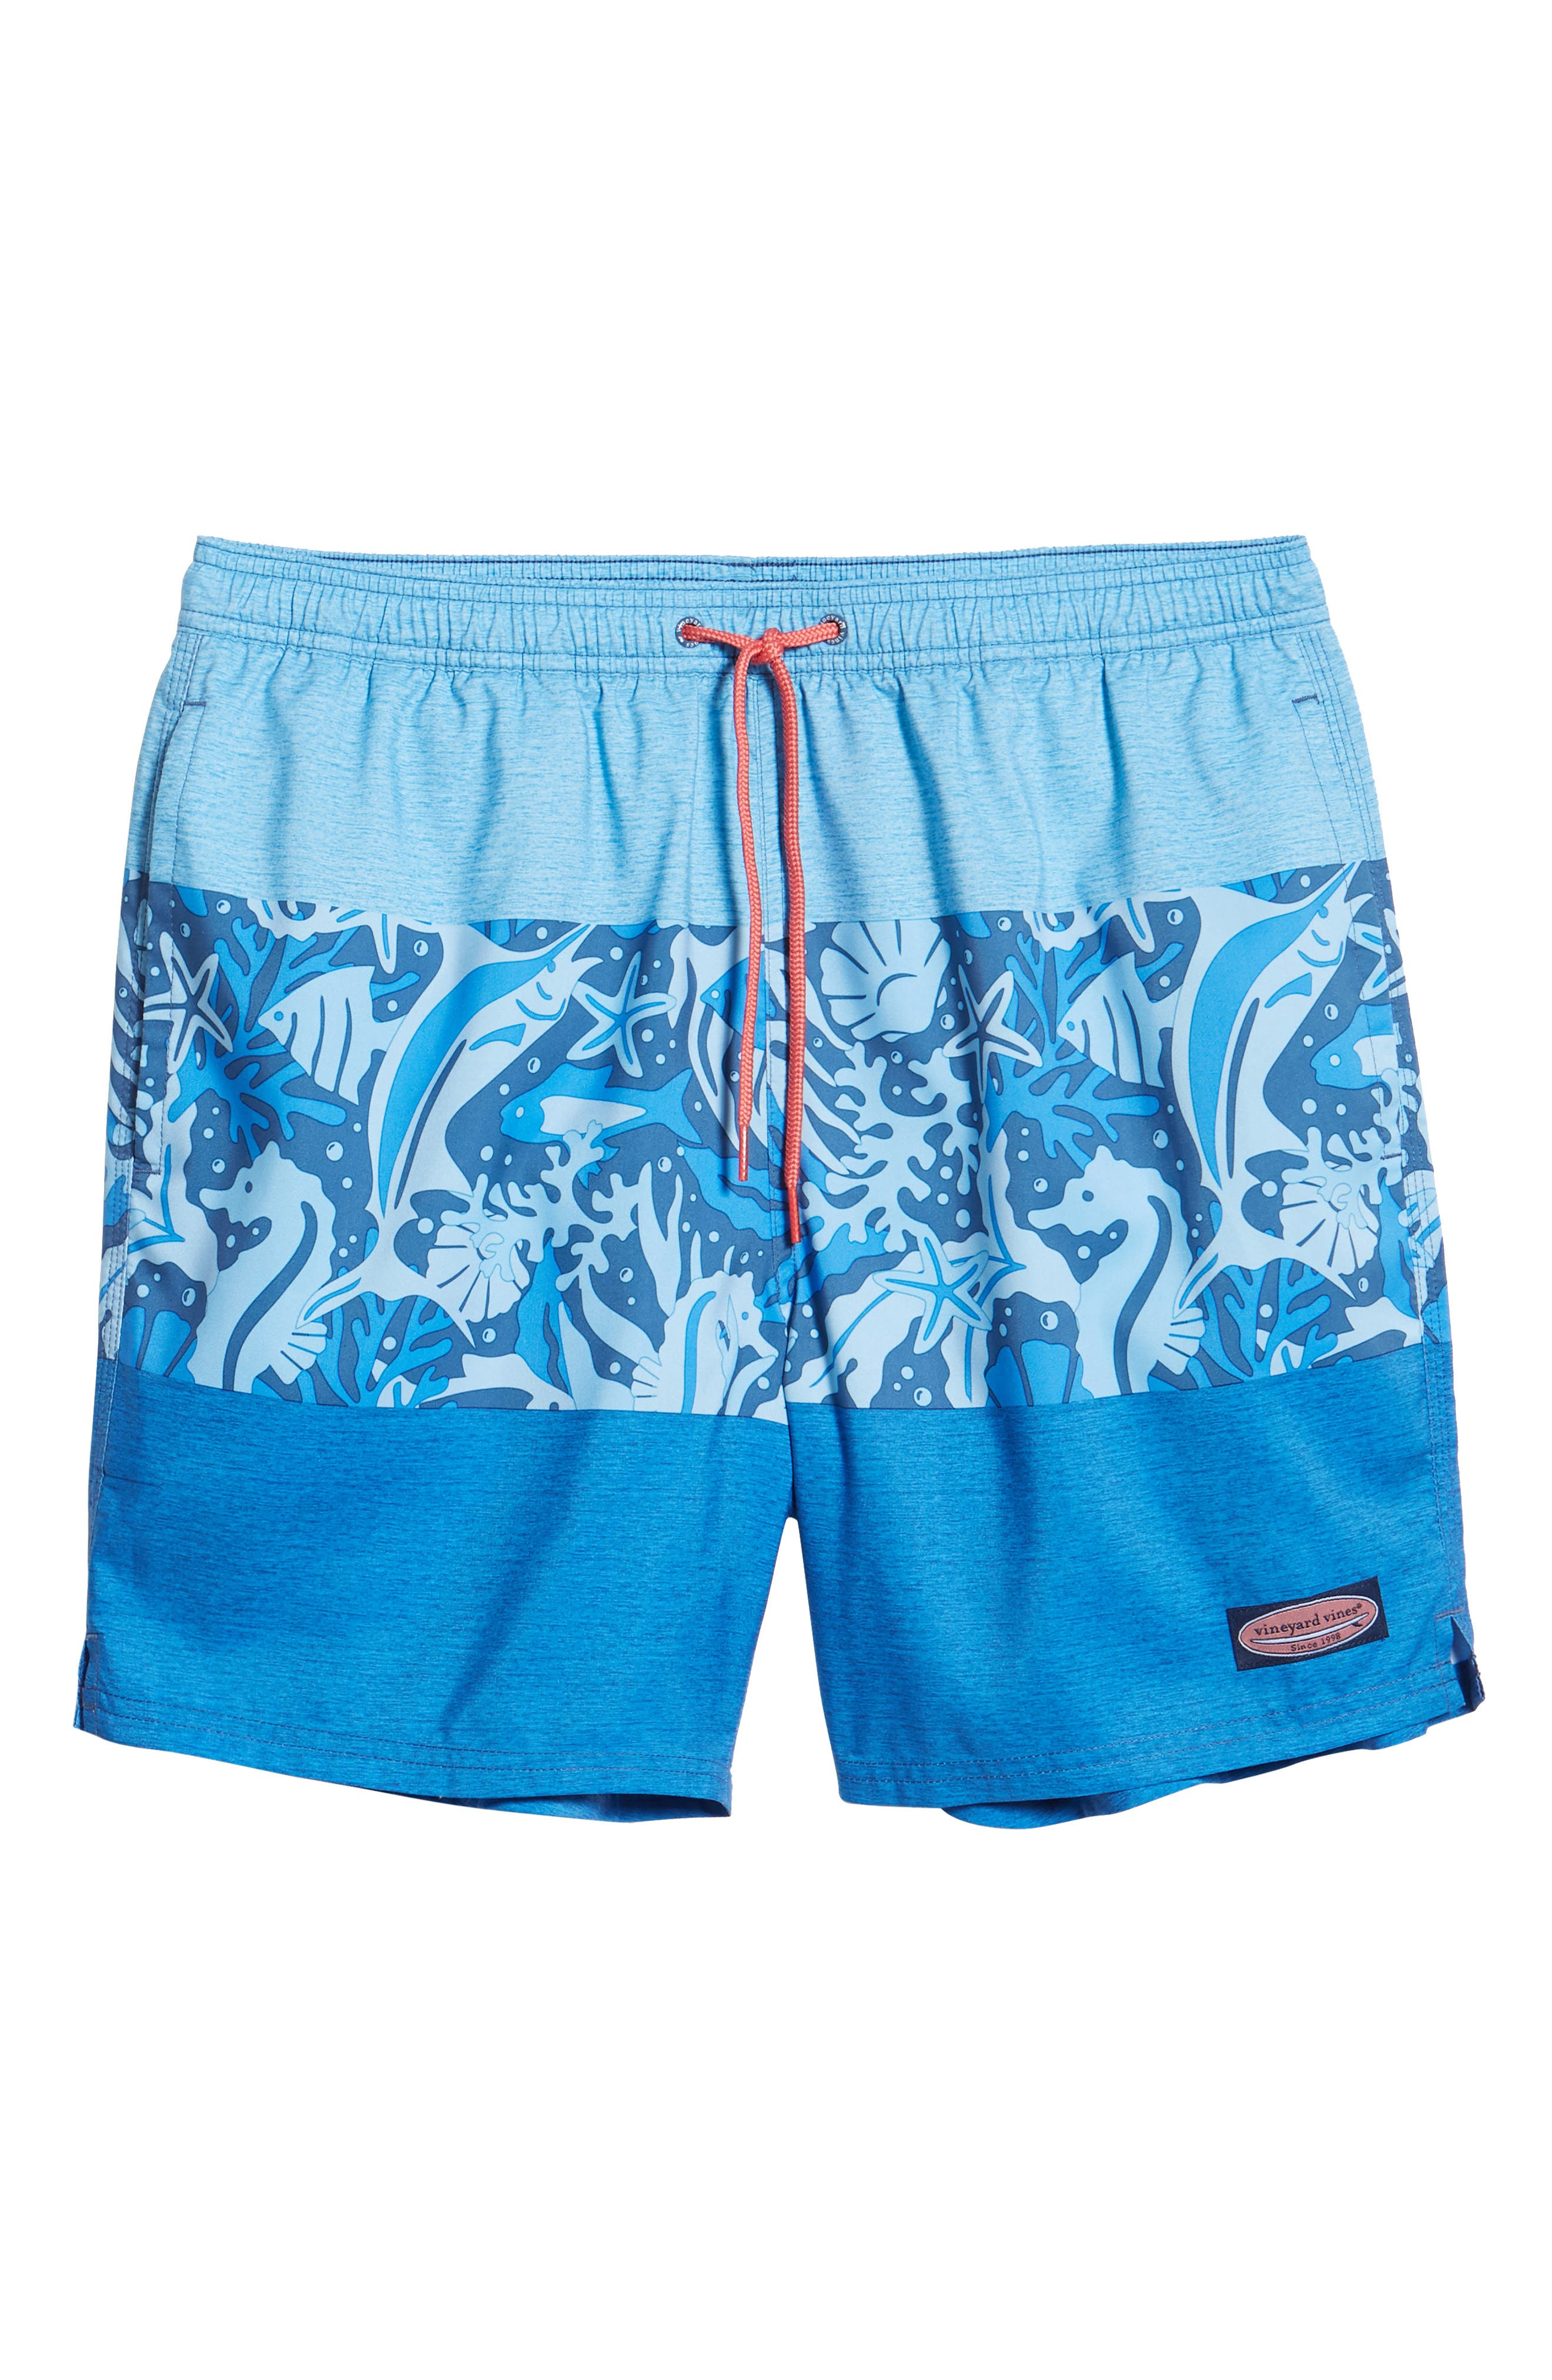 Under the Water Chappy Swim Trunks,                             Alternate thumbnail 6, color,                             MOONSHINE